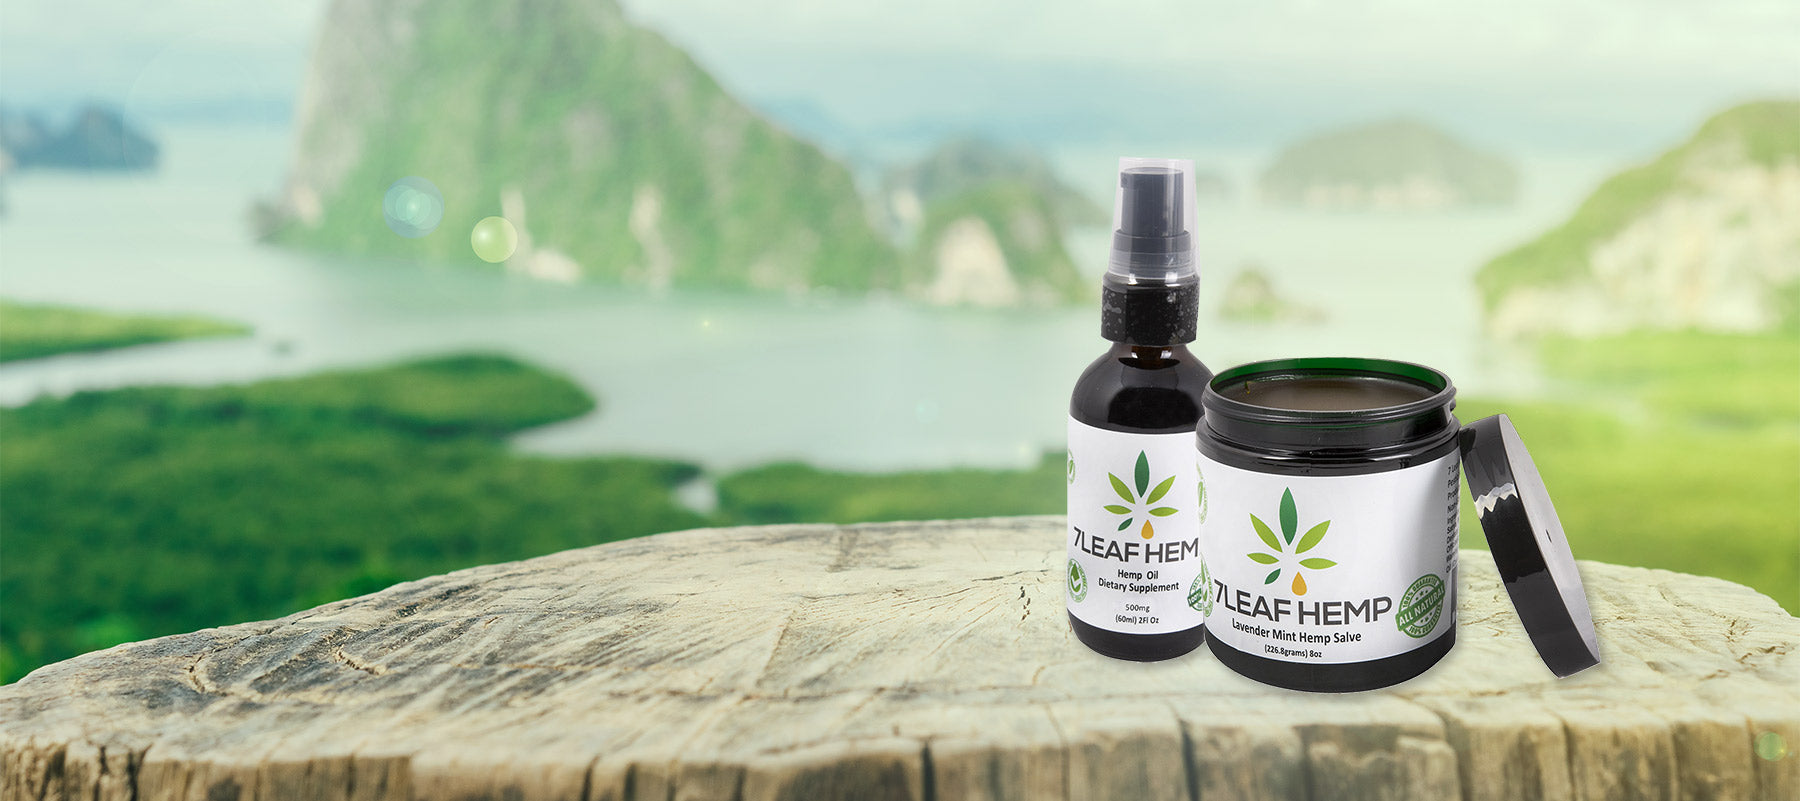 7Leaf Hemp is your one-stop shop for all natural 100% CBD products. 7Leaf is one of the largest distributors and wholesalers of over 30 different CBD and Hemp Brands. We also make 7Leaf Hemp which is one of the most popular products on the market.